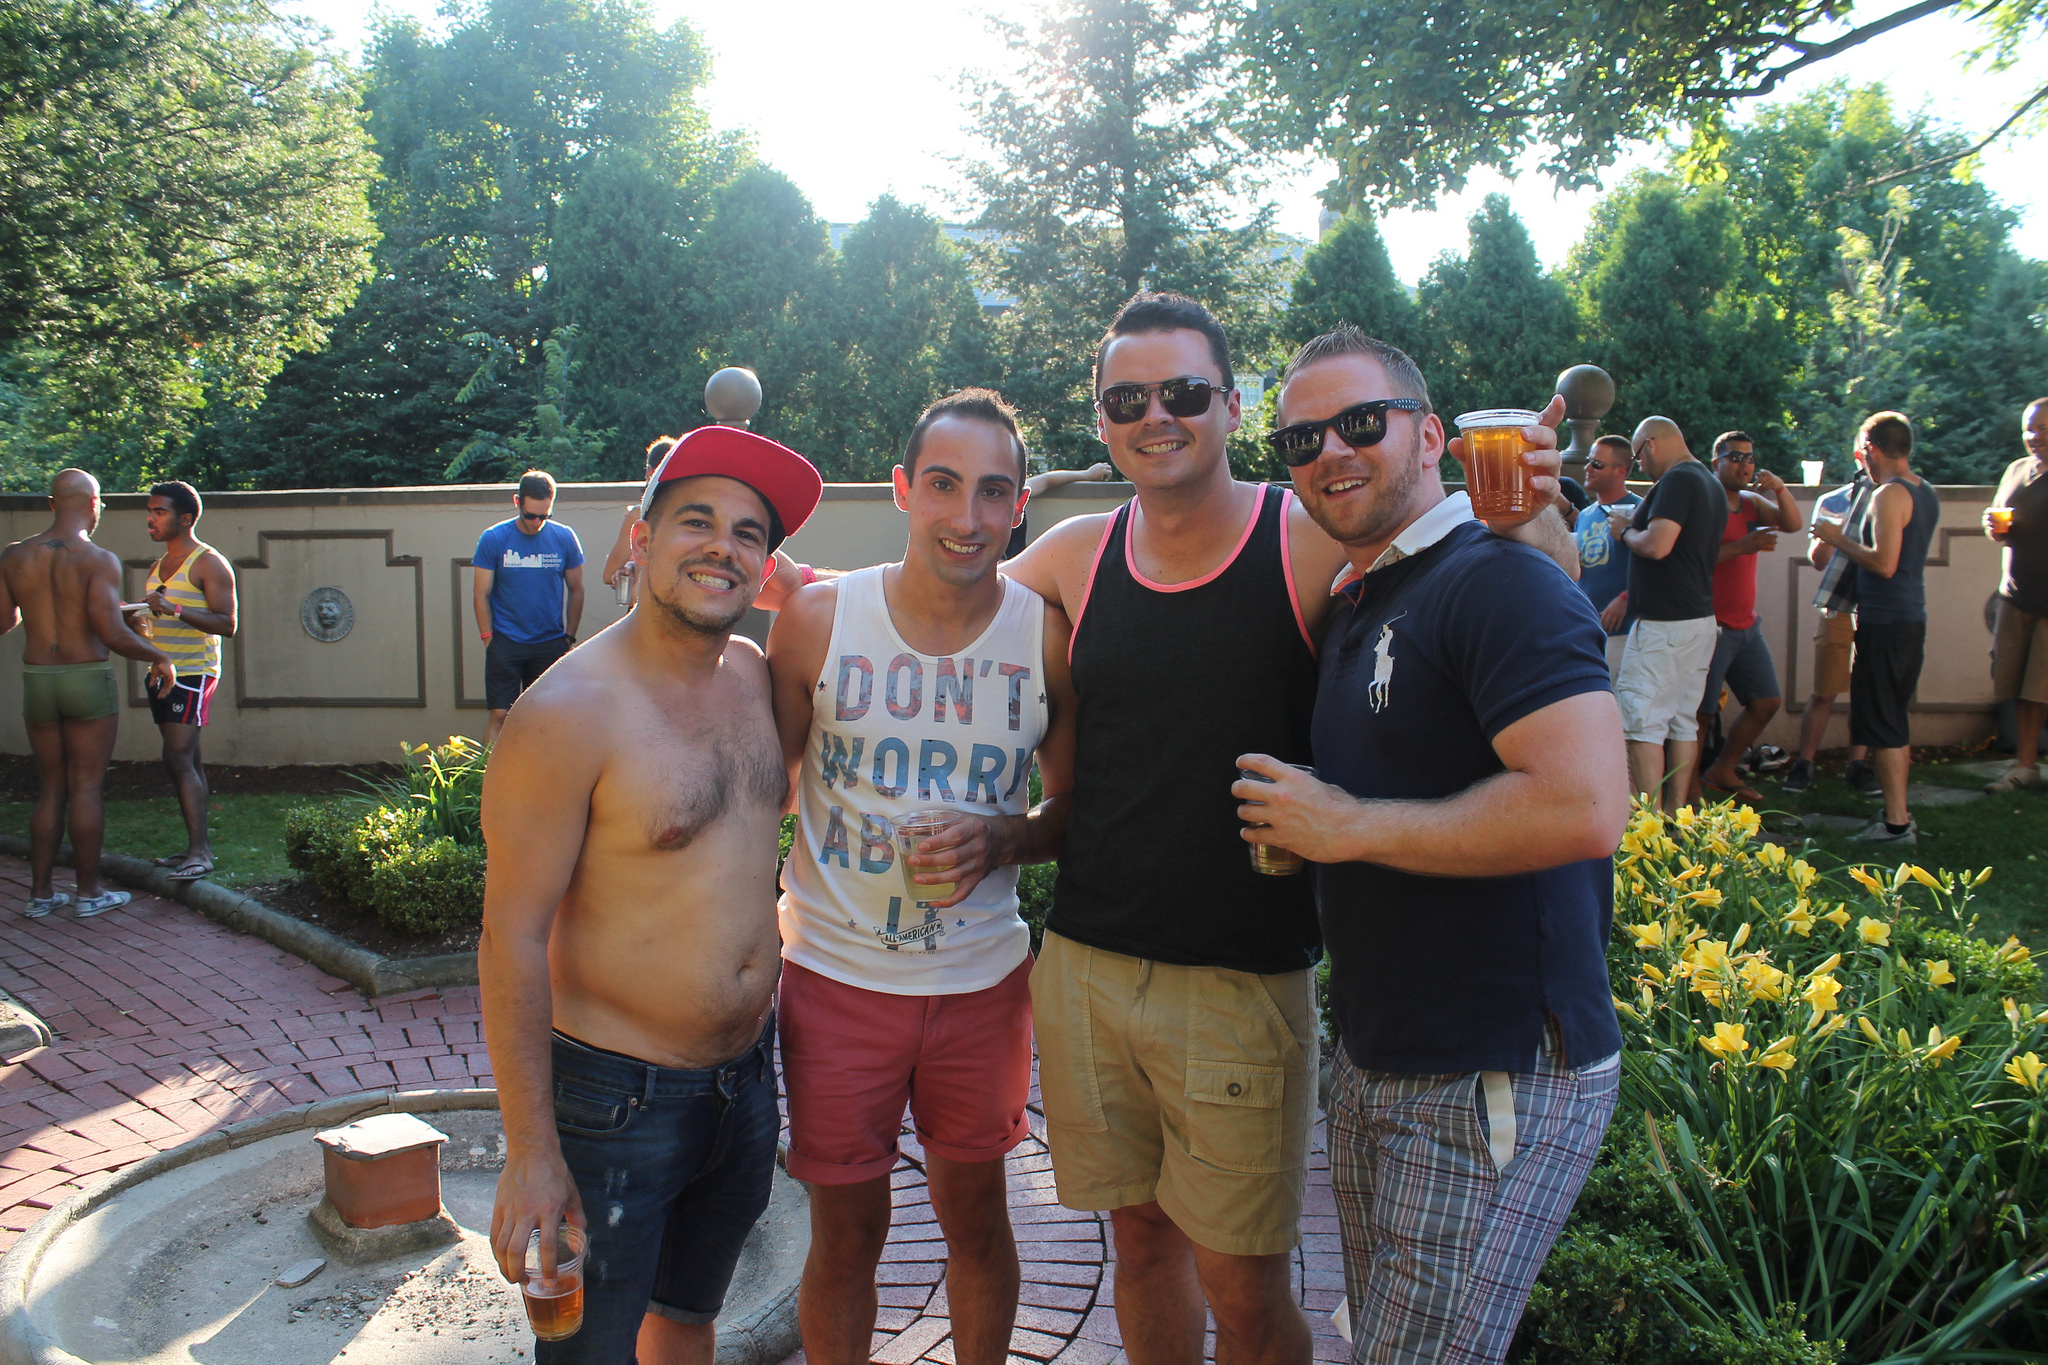 Manhunt Summer Pool Party with gay porn stars Deviant Otter, Adam Wirthmore and On The Hunt model Angelo.